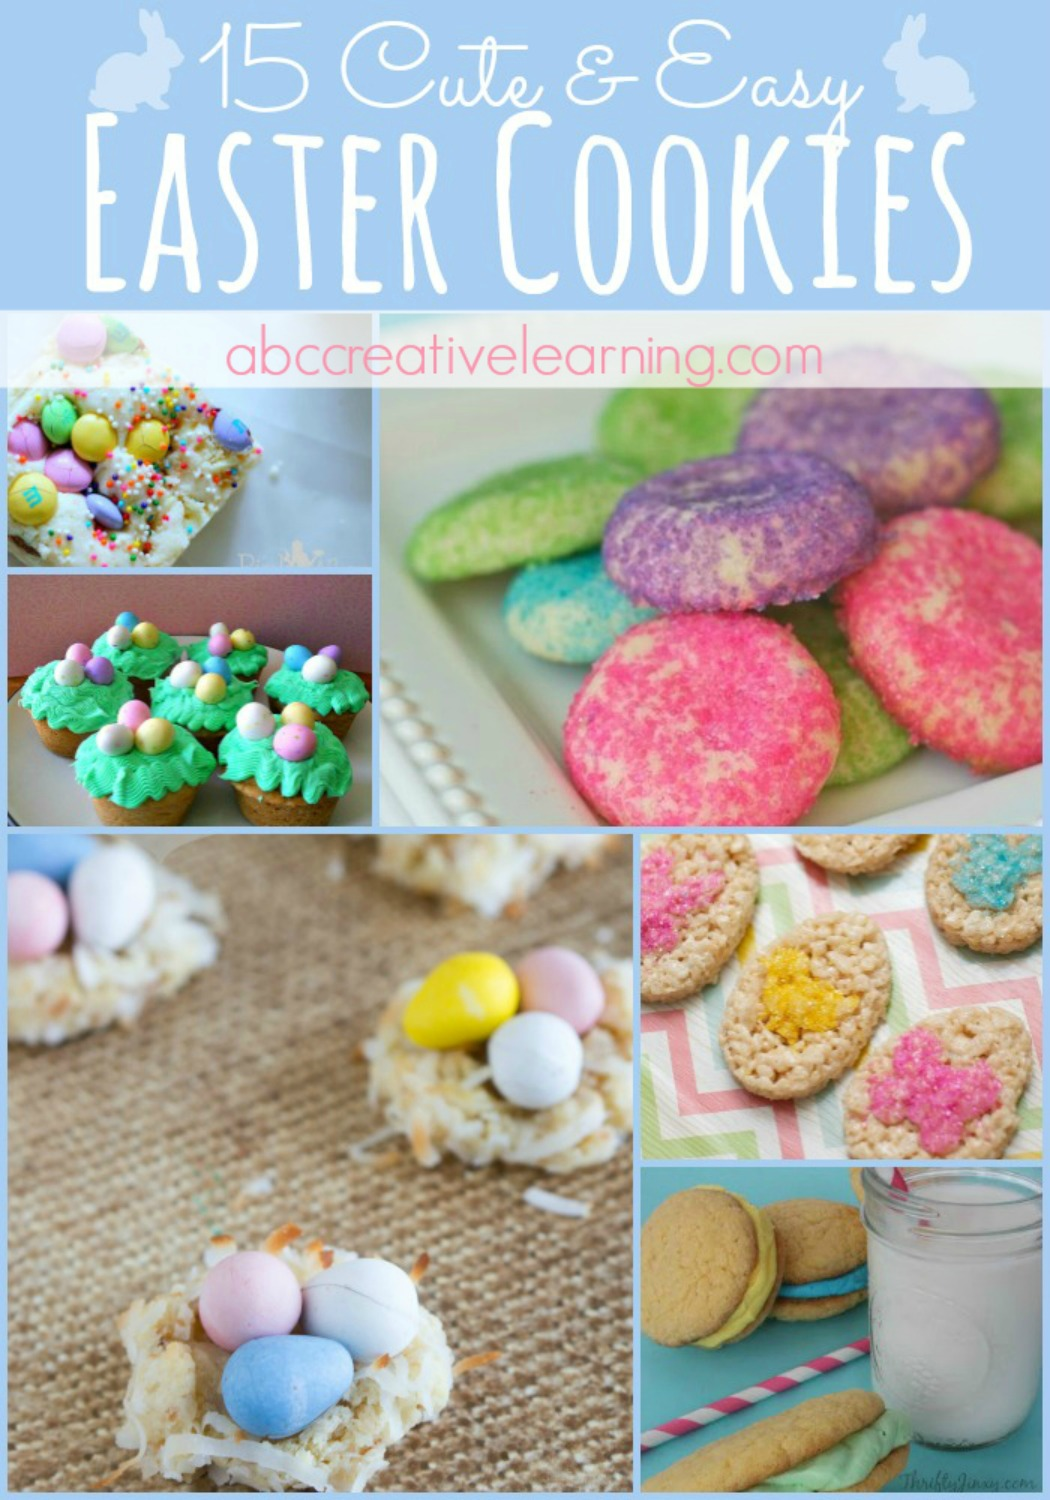 15 Cute and Easy Easter Cookie Recipes